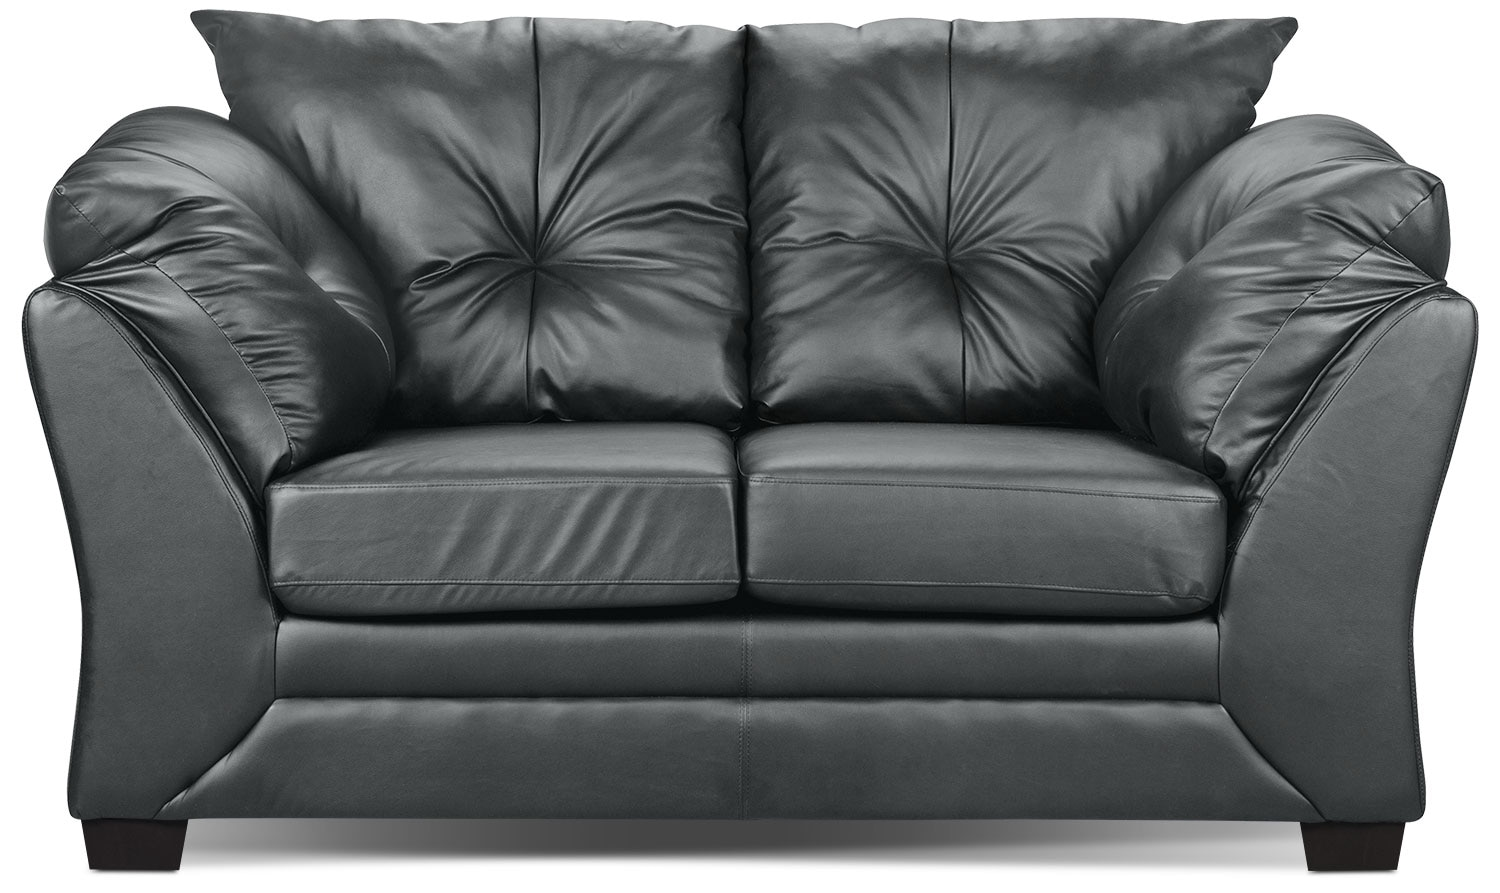 Max Faux Leather Loveseat - Grey